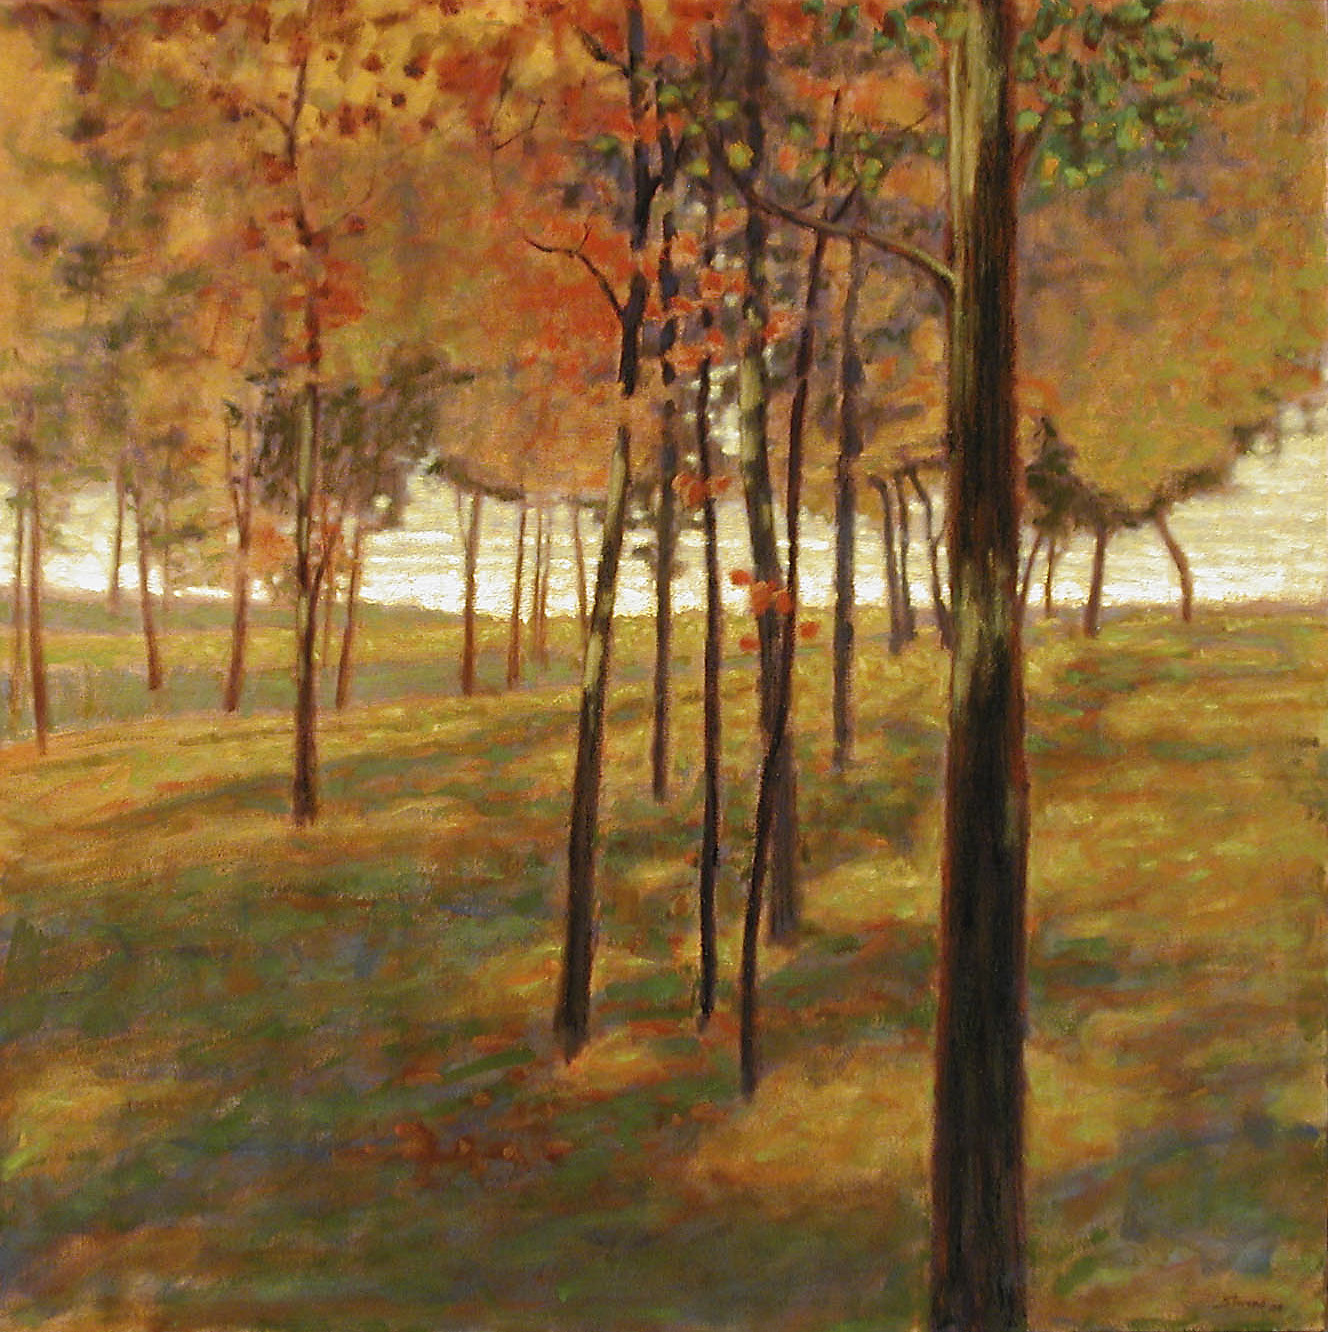 107-04   | oil on canvas | 36 x 36"